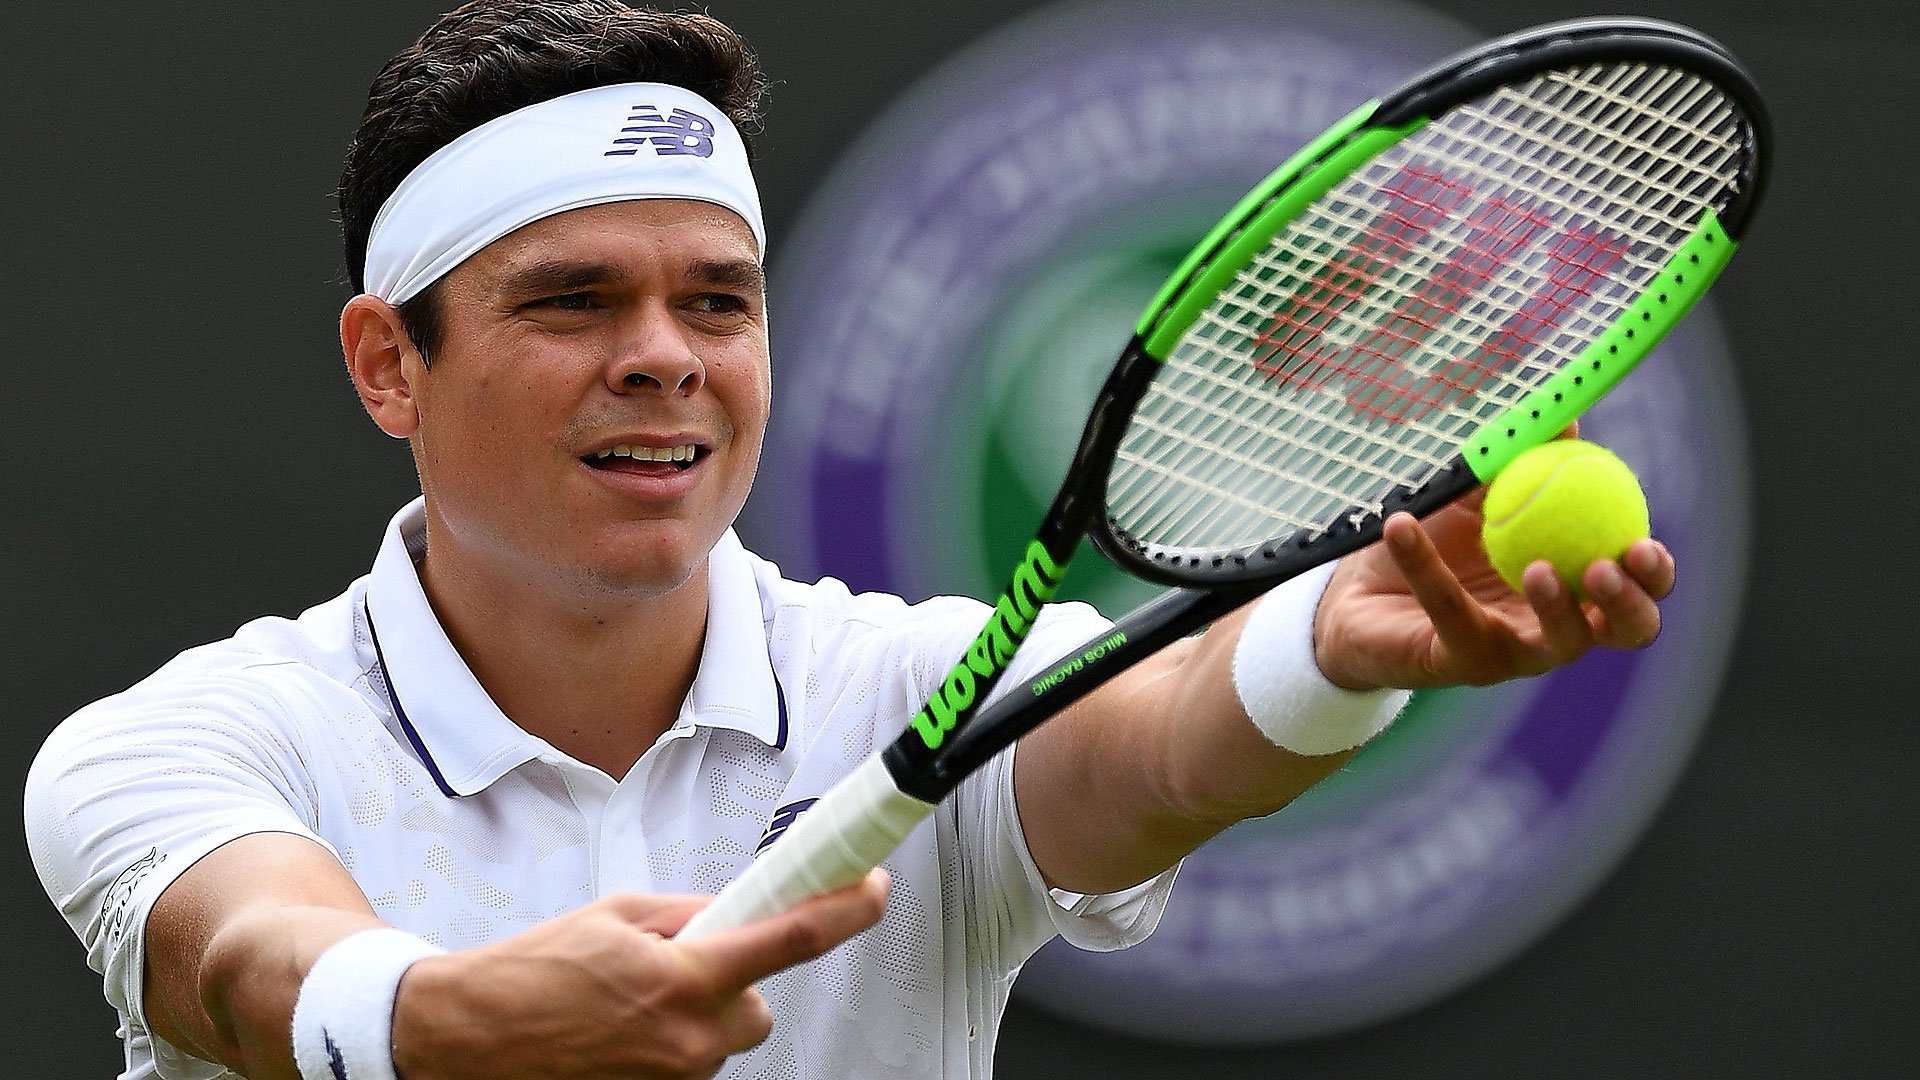 .@milosraonic survives a stern test from Mikhail Youzhny to reach R3 at @Wimbledon. Read: https://t.co/eFkSZFoDBA https://t.co/36RqQt5drw